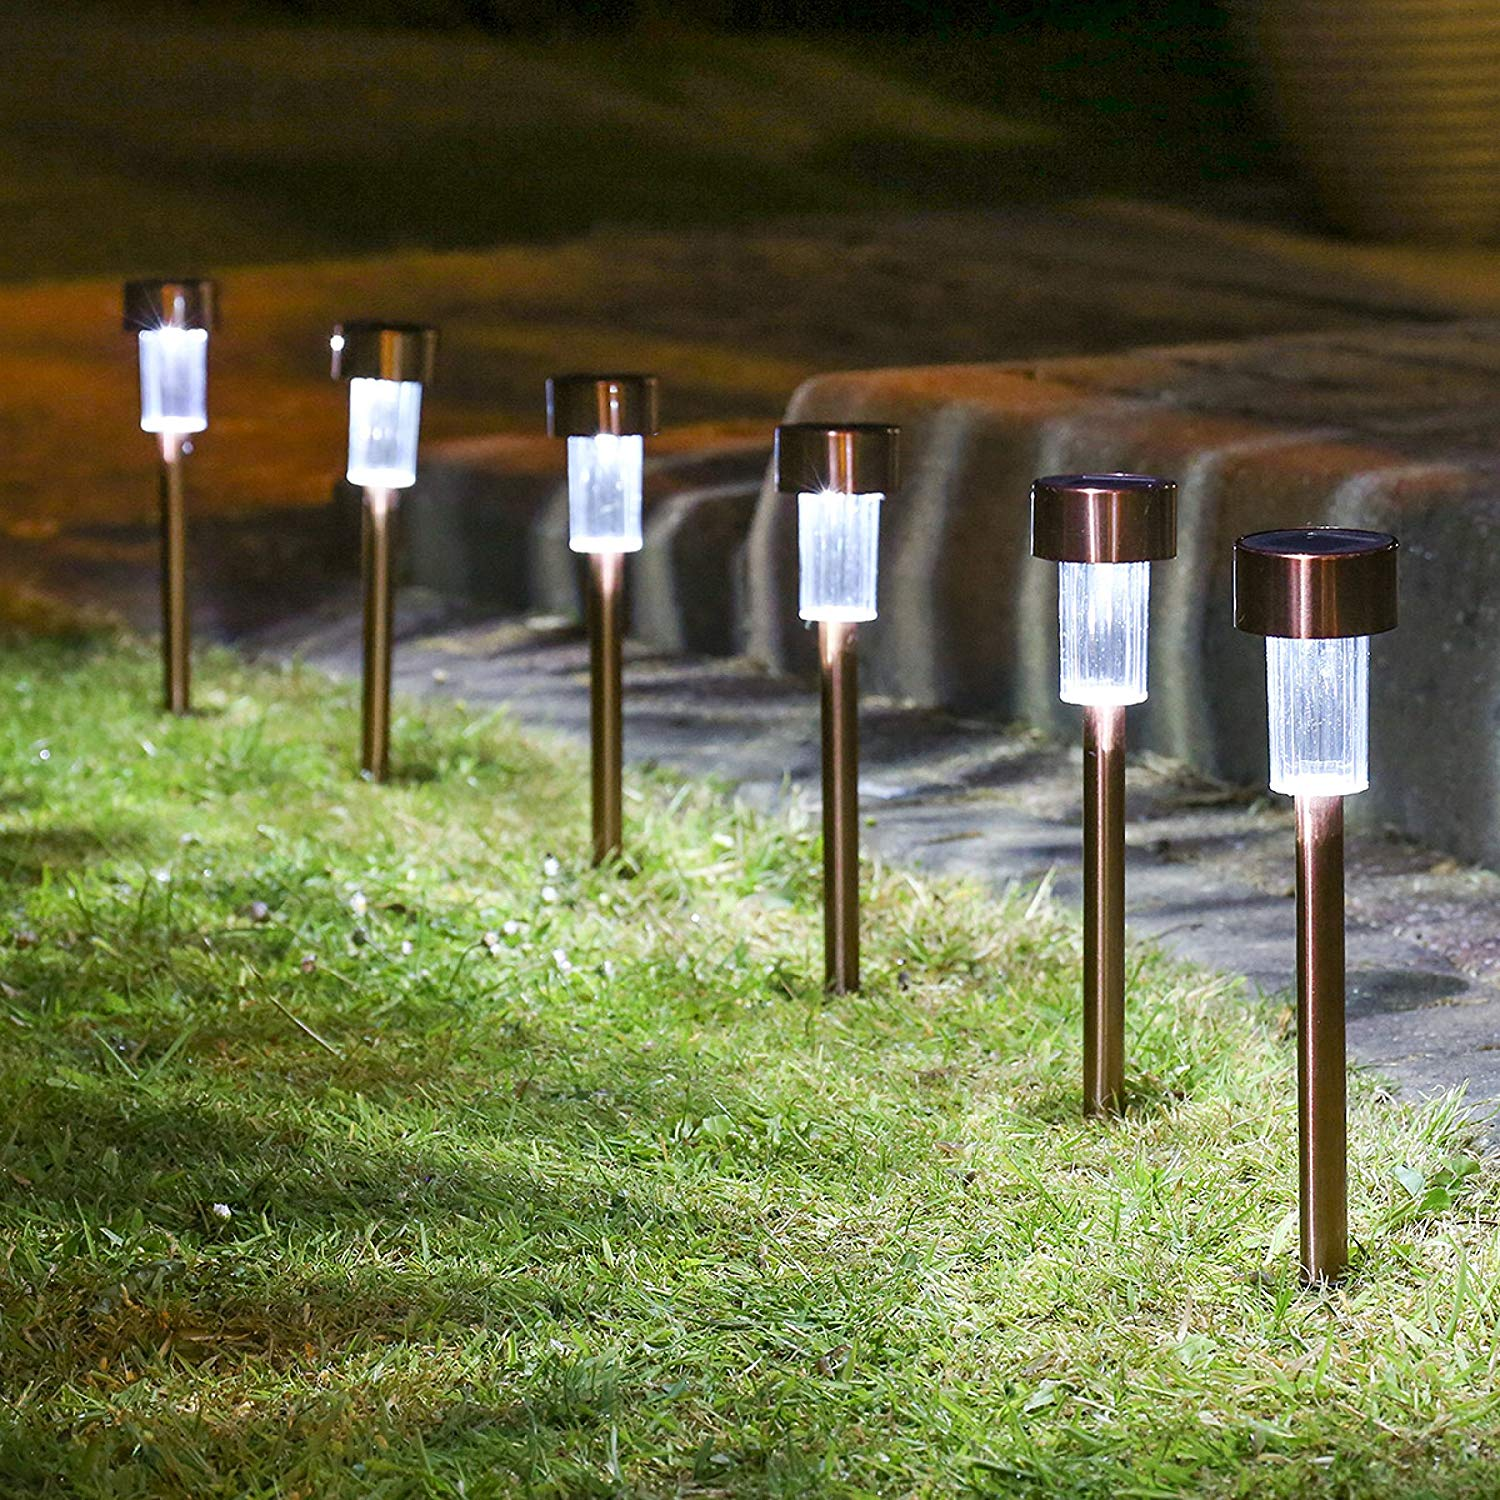 Garden Lights ... solar lights outdoor, stainless steel, solar light, landscape lighting,  solar pathway lights, for lawn, TNLFPFB